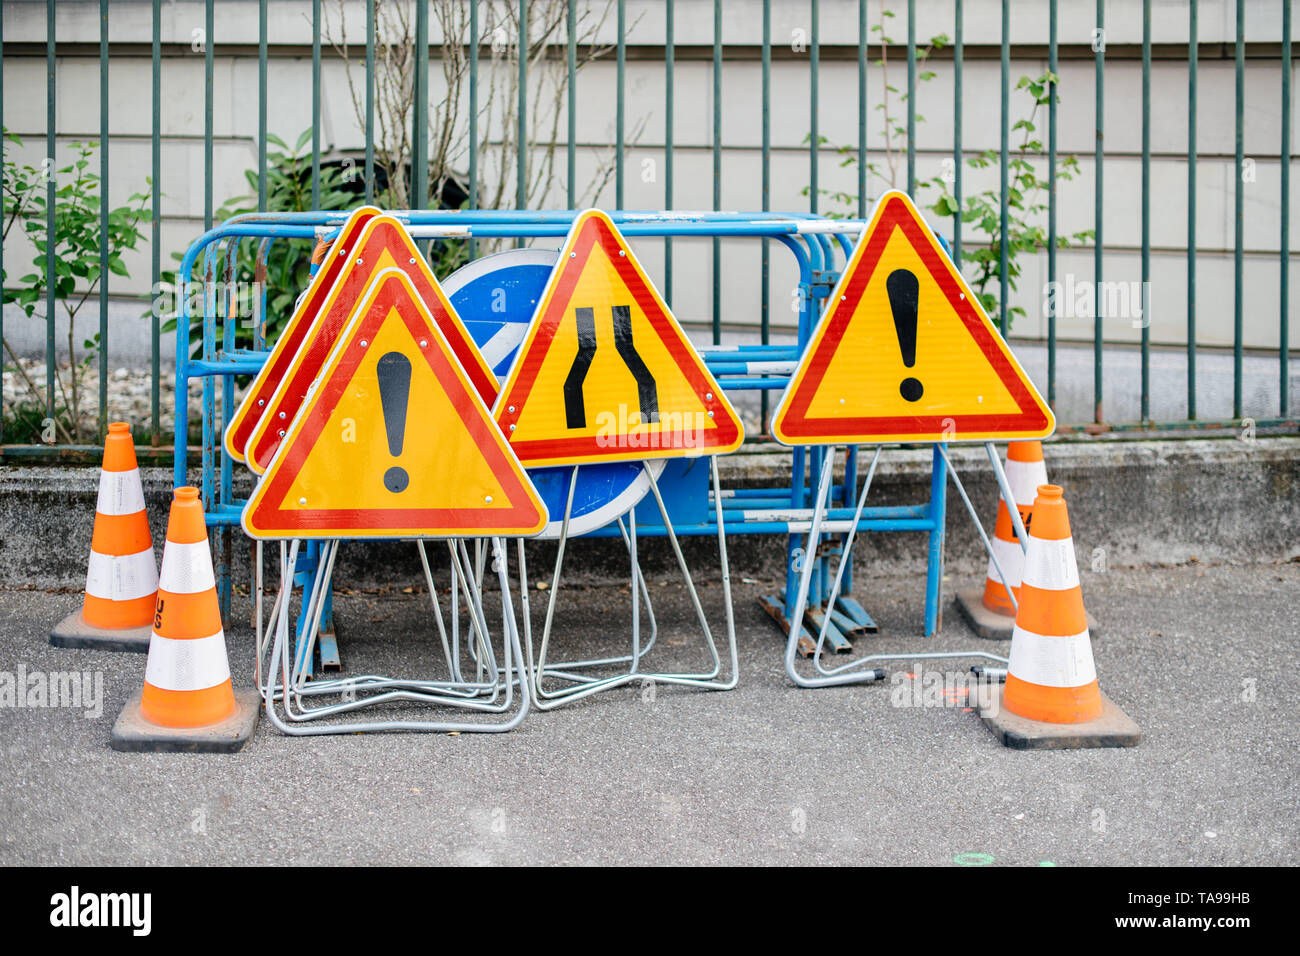 Traffic signs and cones on a street near a roadworks construction site   - Stock Image